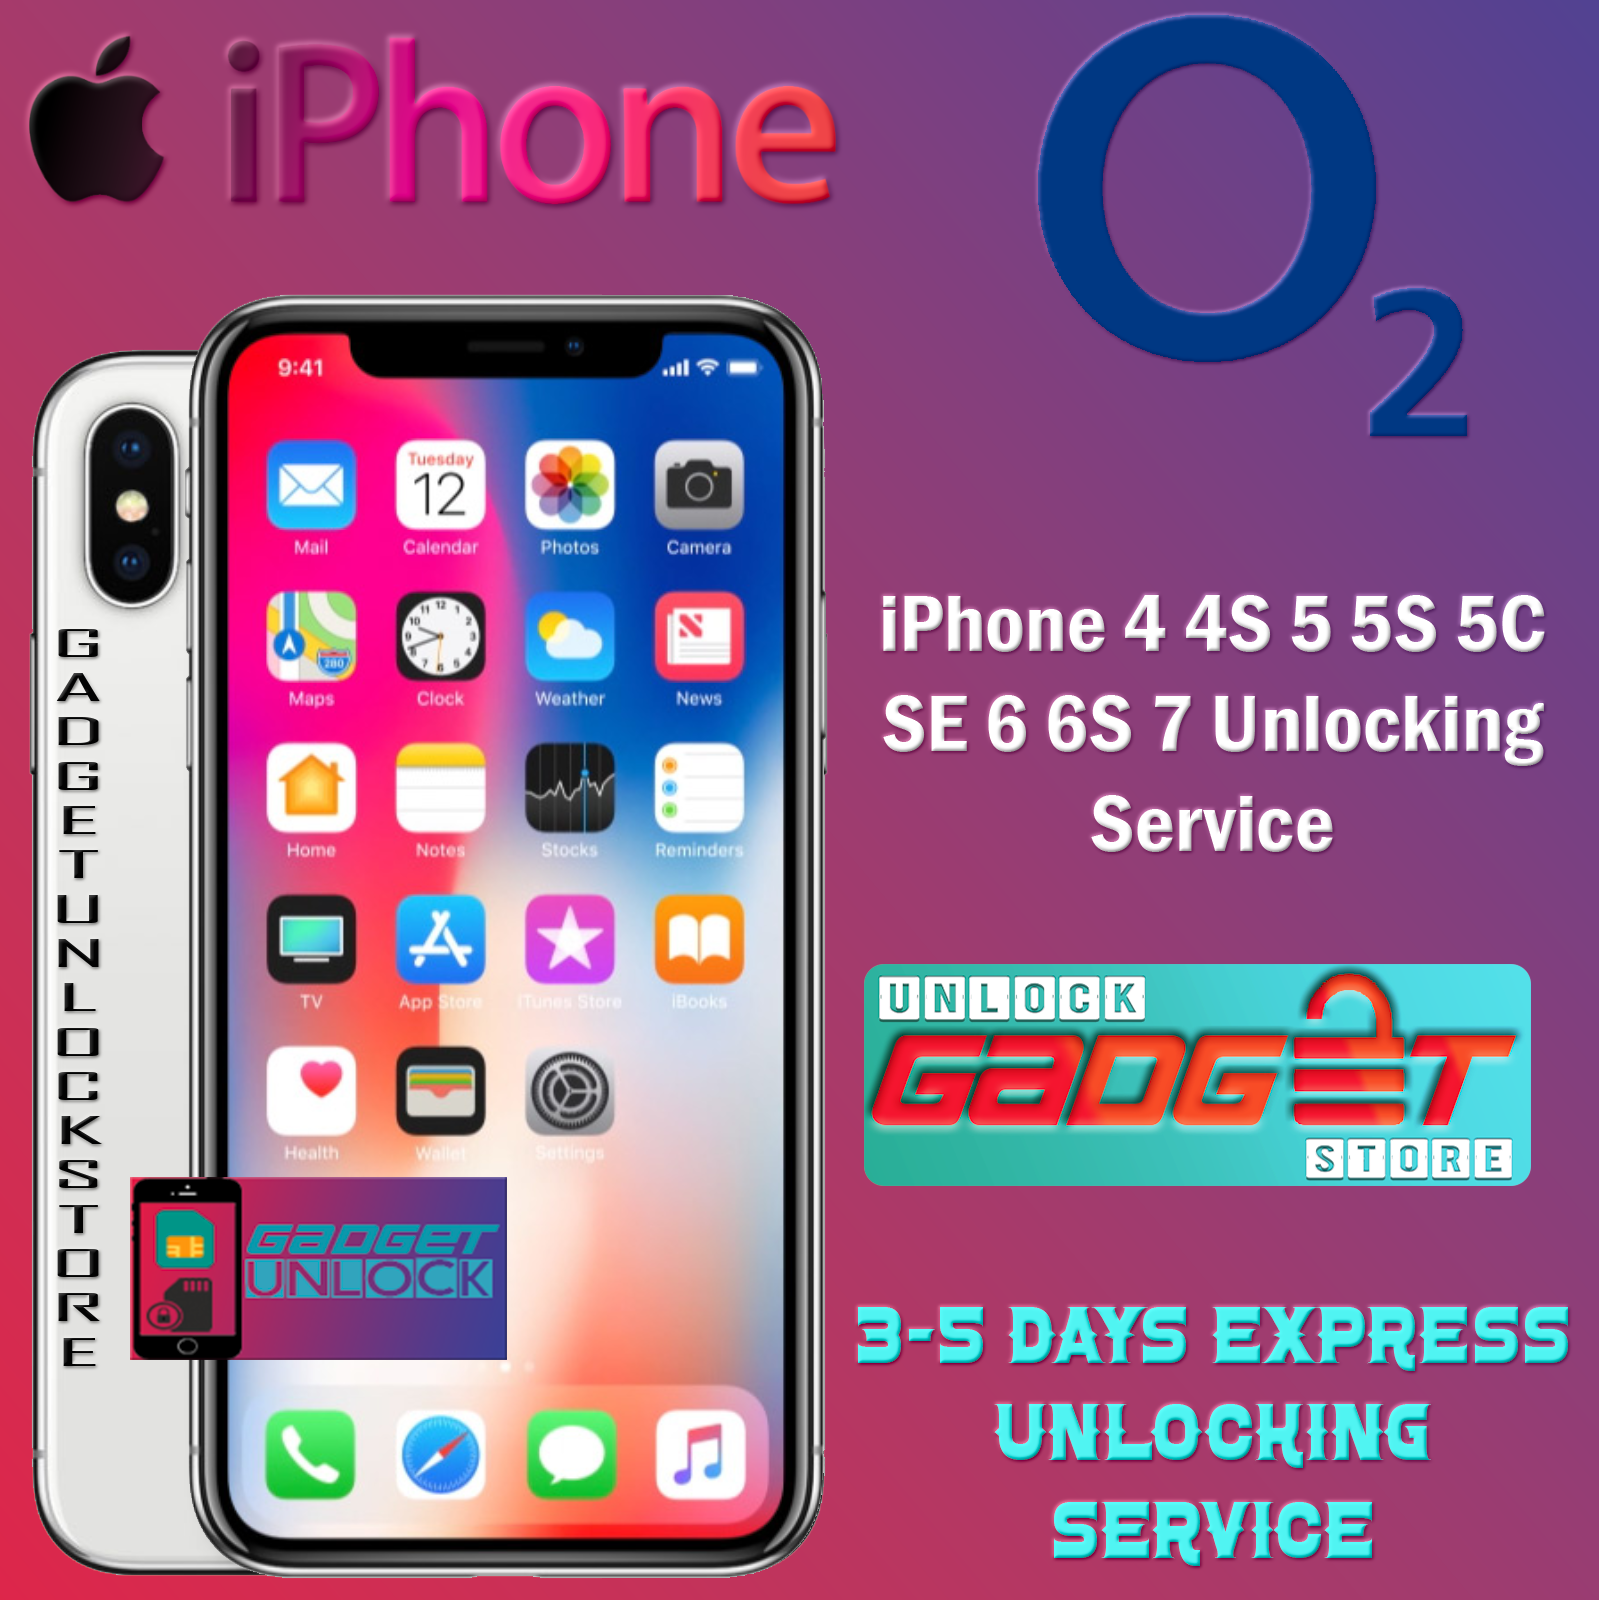 UNLOCK CODE FOR IPHONE 5 5S 5C SE 6 6S 7 8 X XR XS 11 Pro Max O2 TESCO UK UNLOCK 3